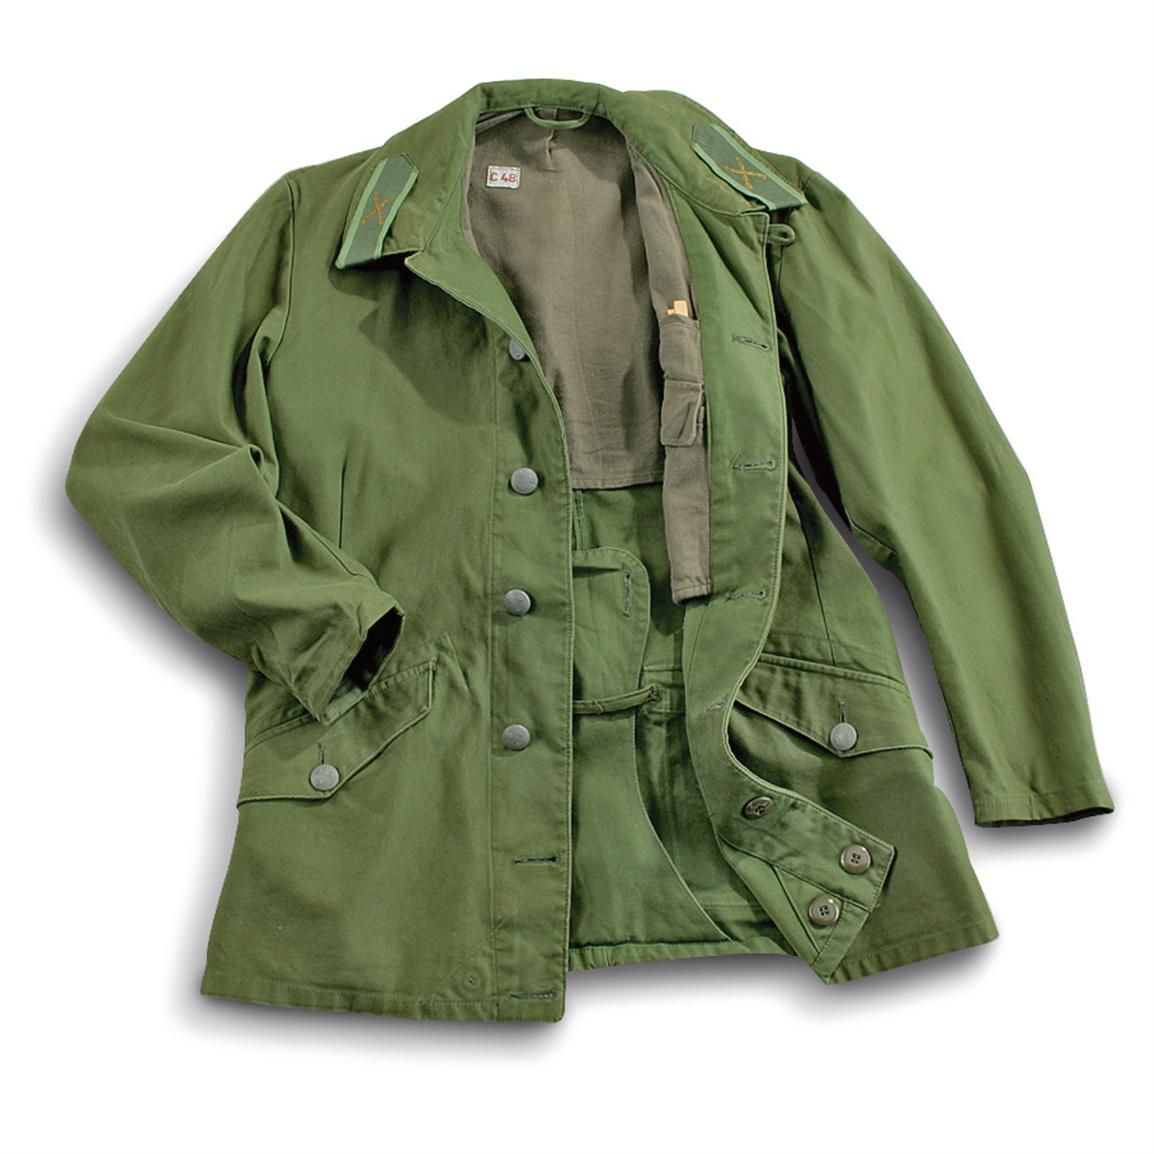 Used Olive Drab Swedish Military M59 Jackets. They re Swedish and green.  Nuff said. 04afc3292b